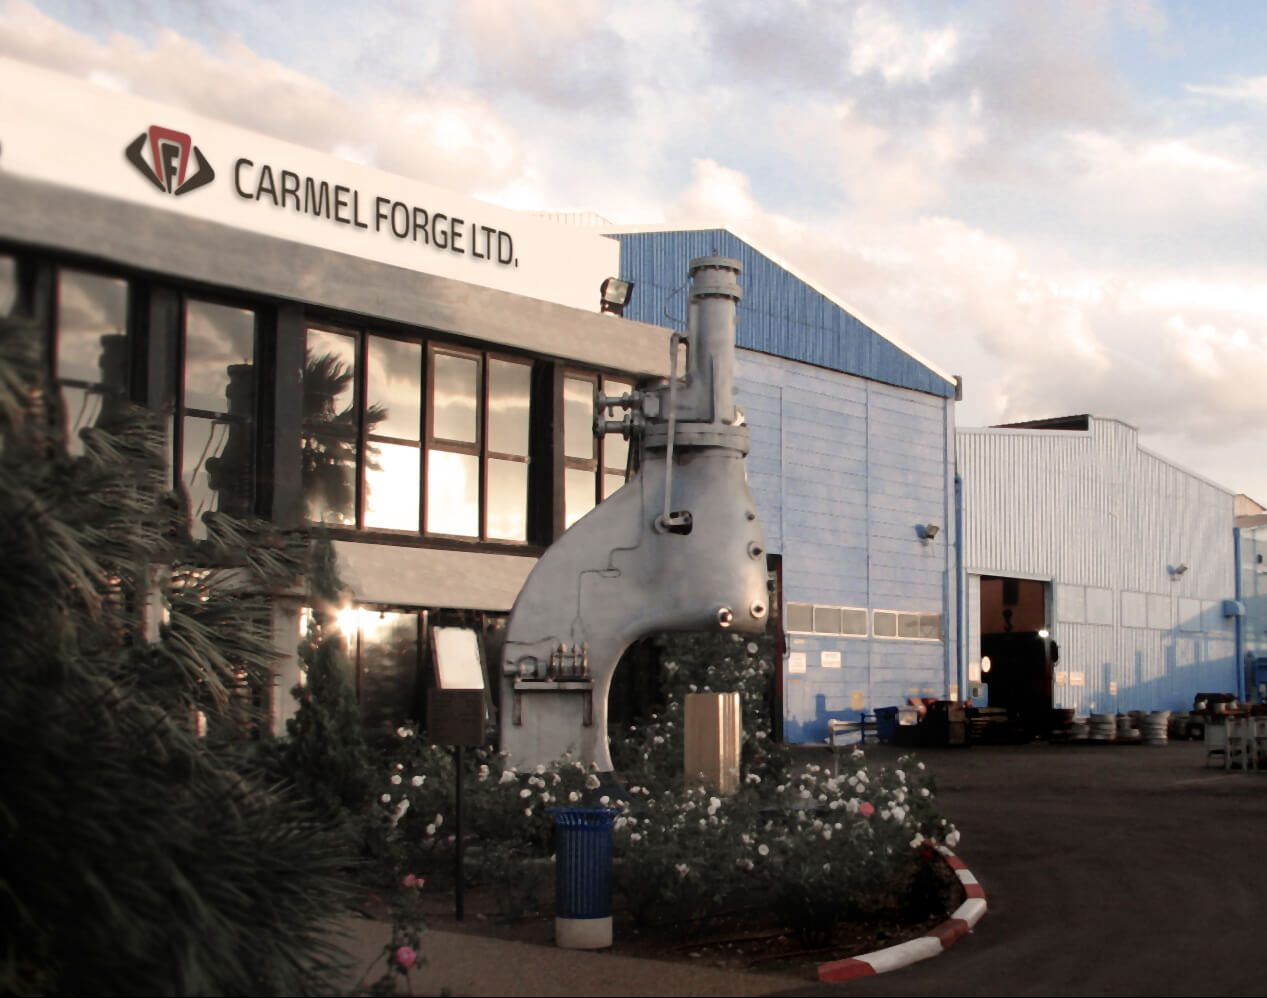 Bet Shemesh Engines completes purchase of Carmel Forge Ltd.